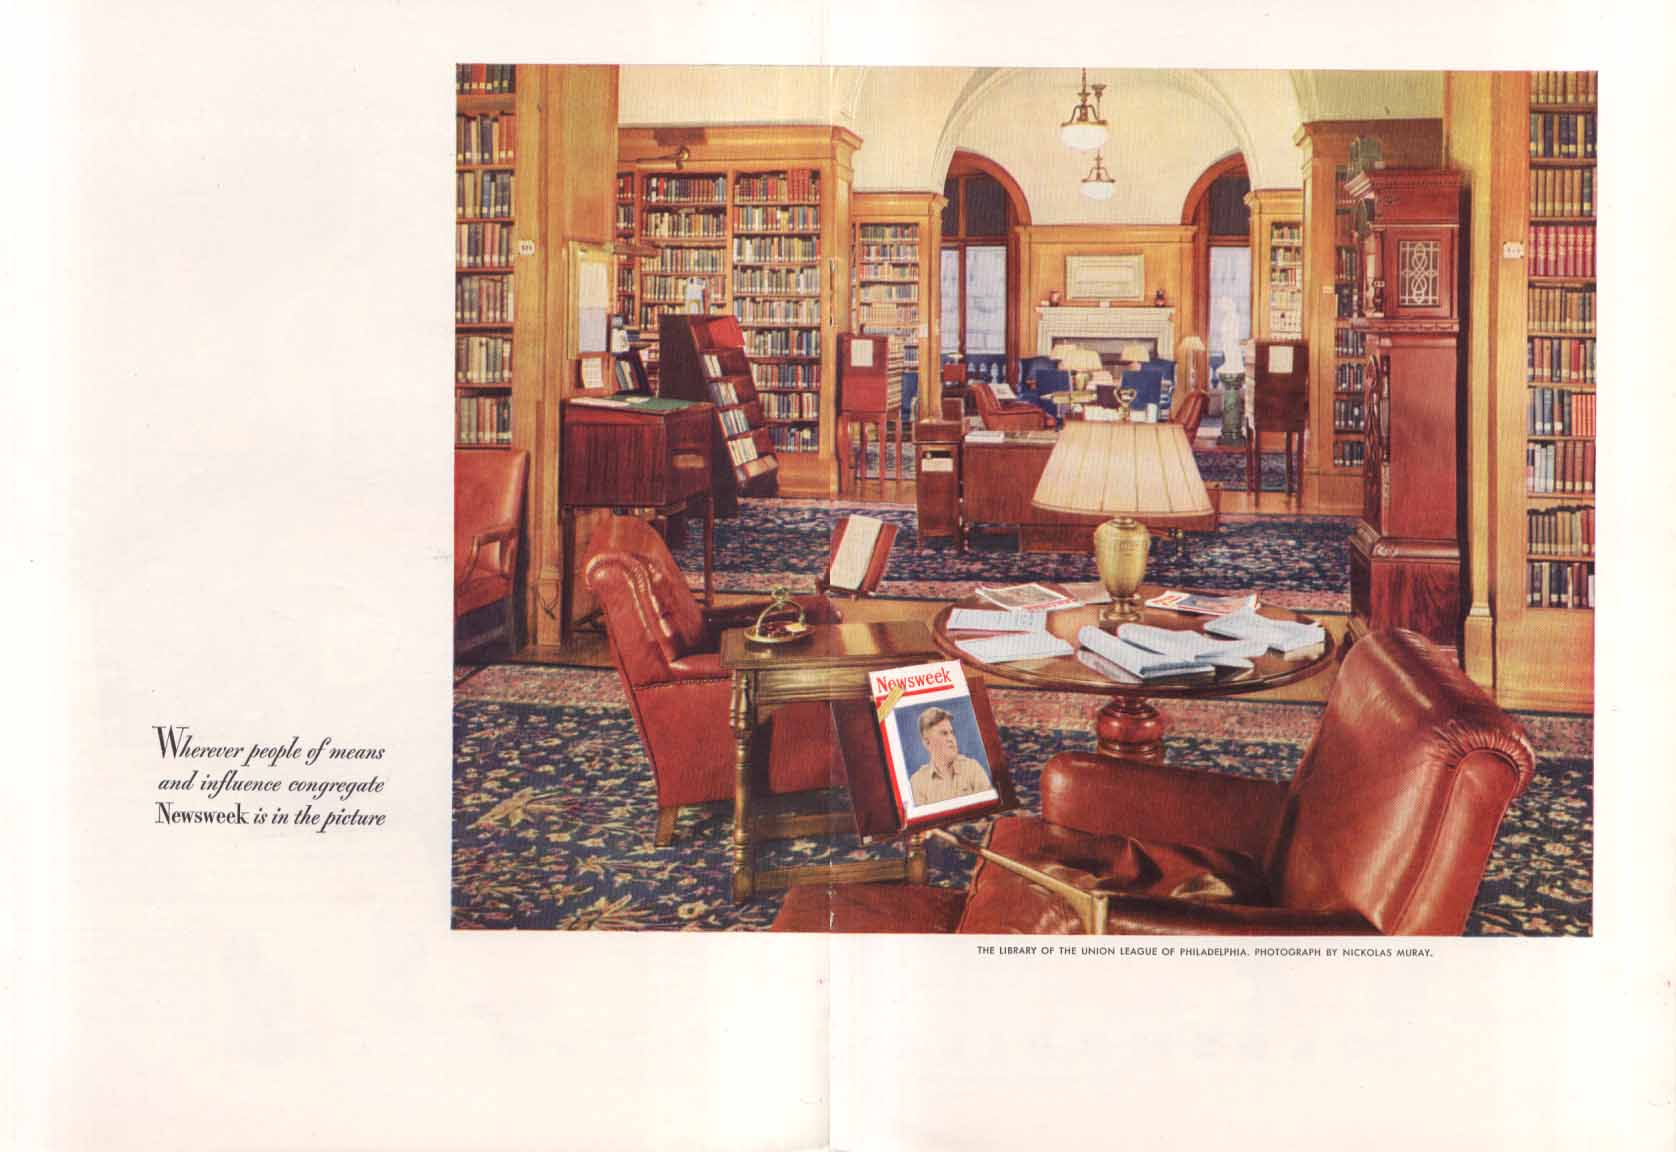 Image for Newsweek Union League of Philadelphia ad 1949 Muray